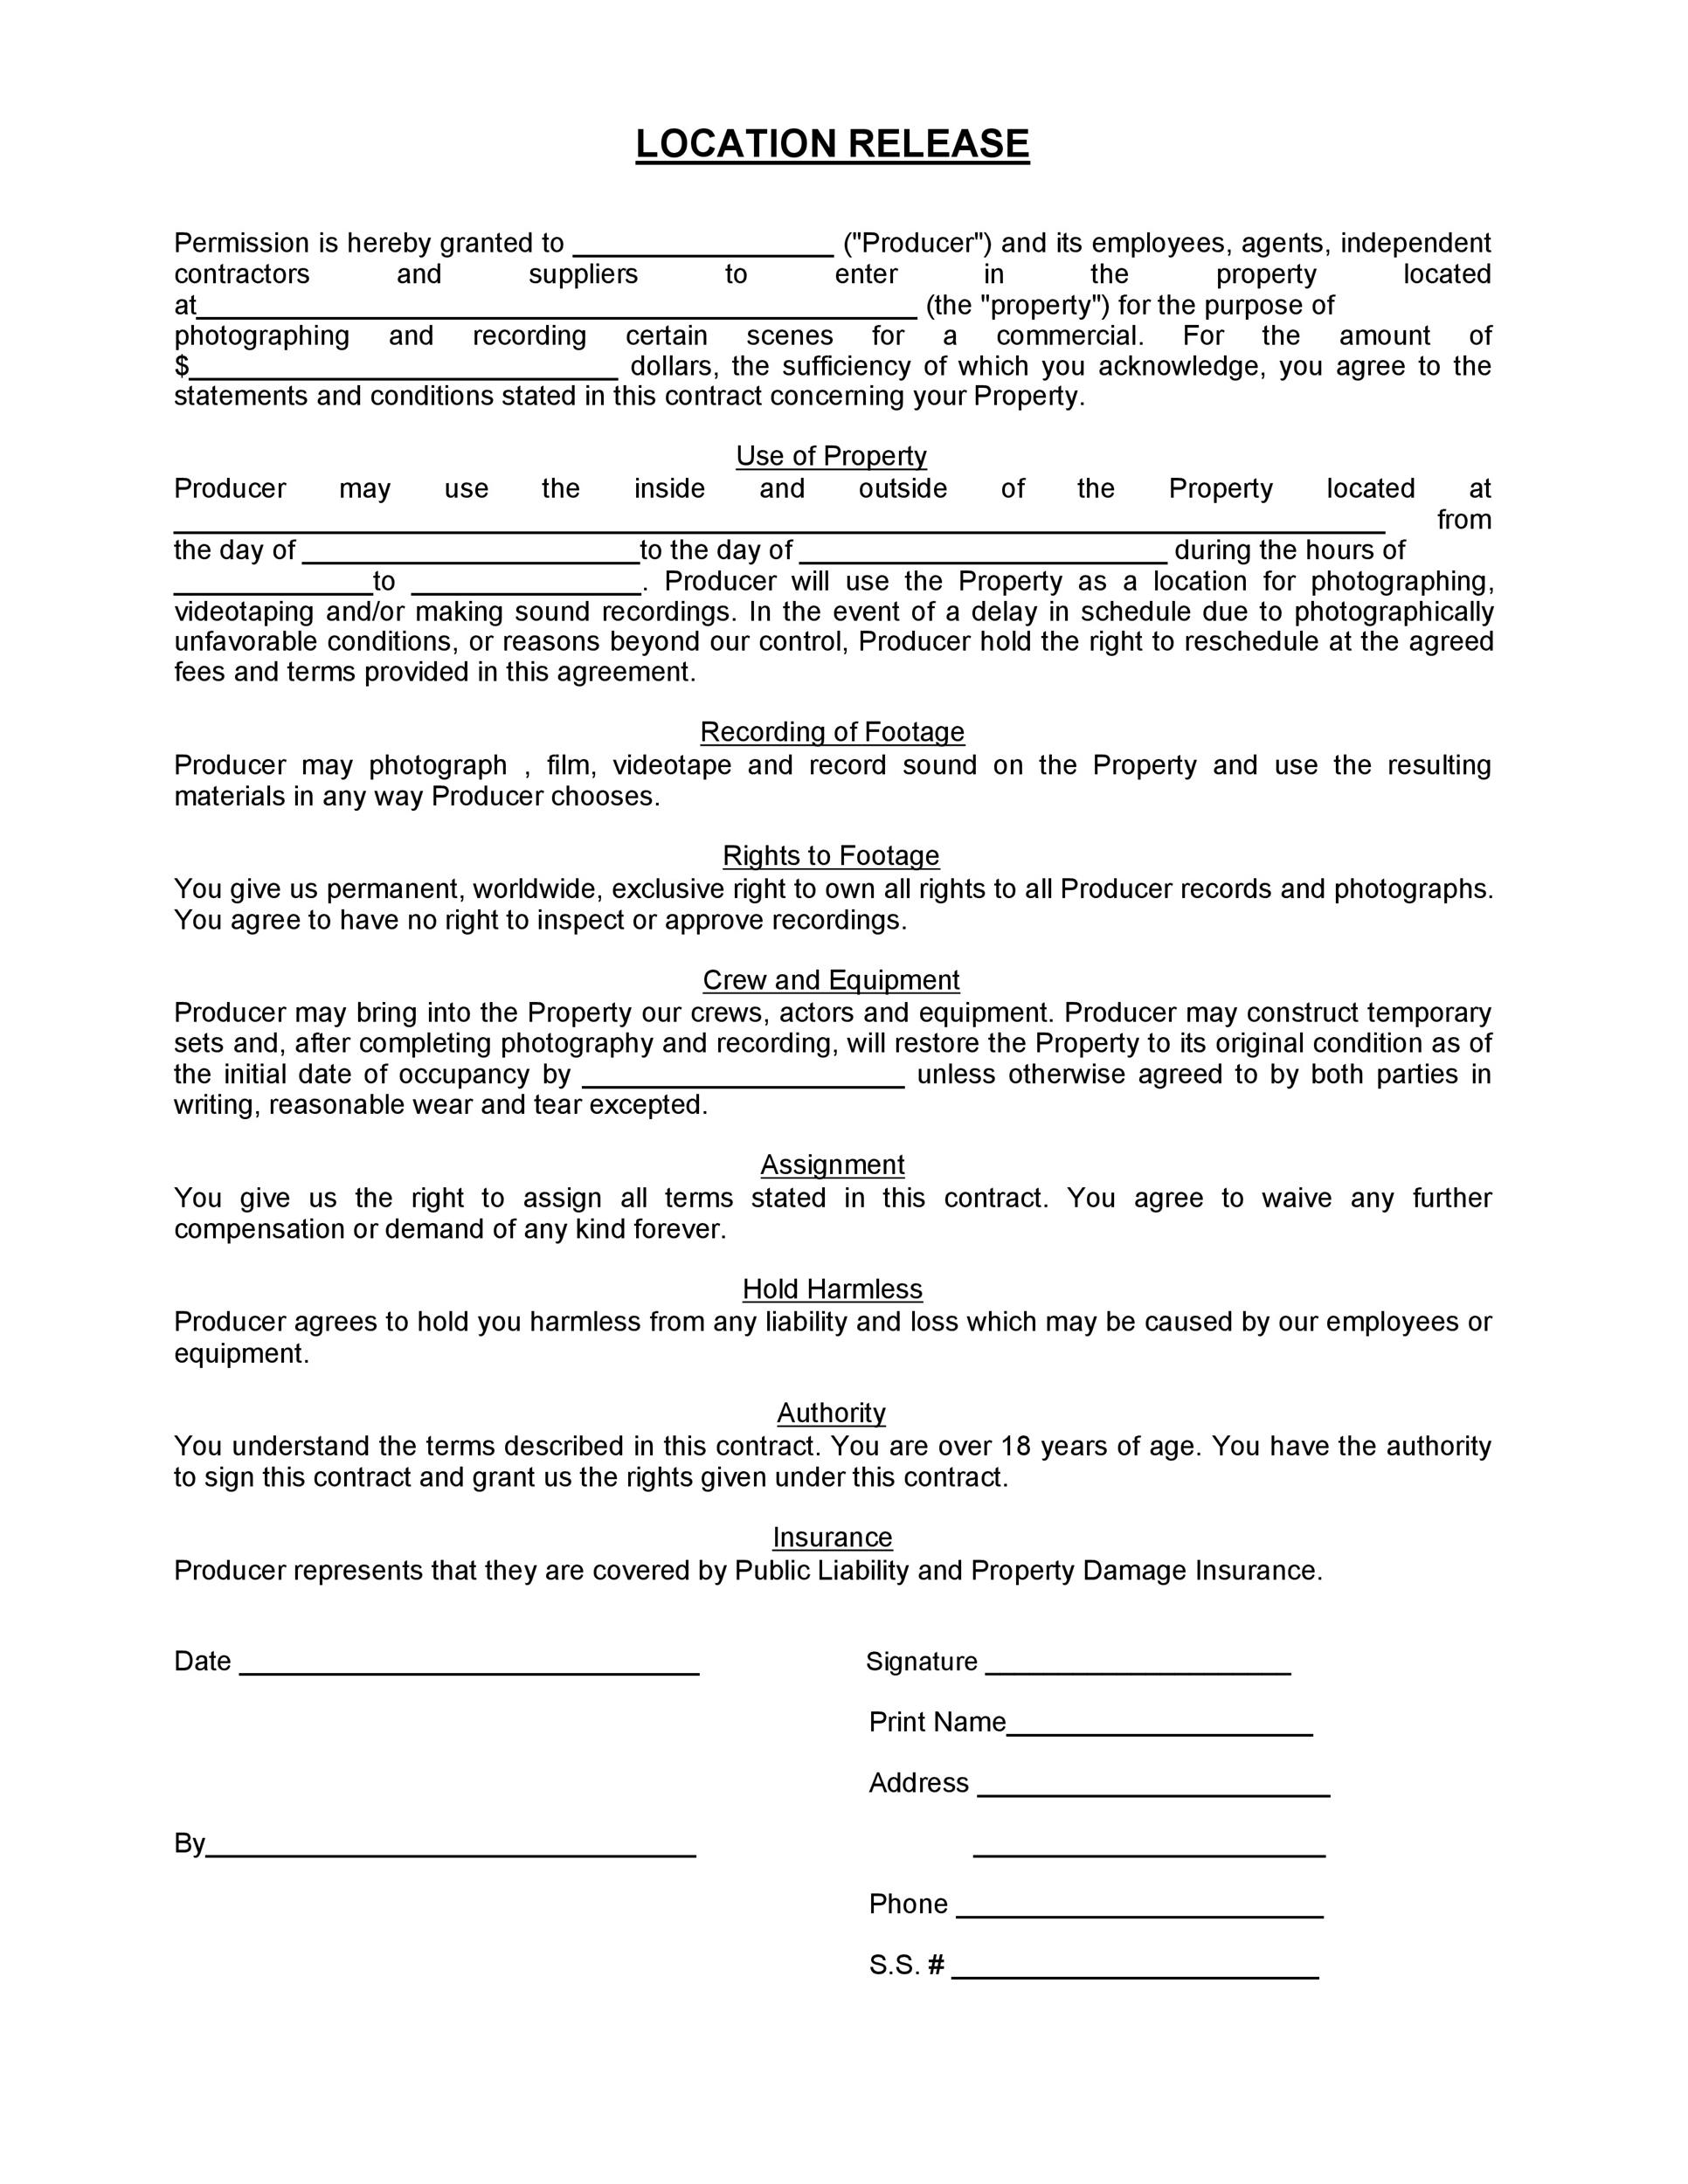 Free location release form 05